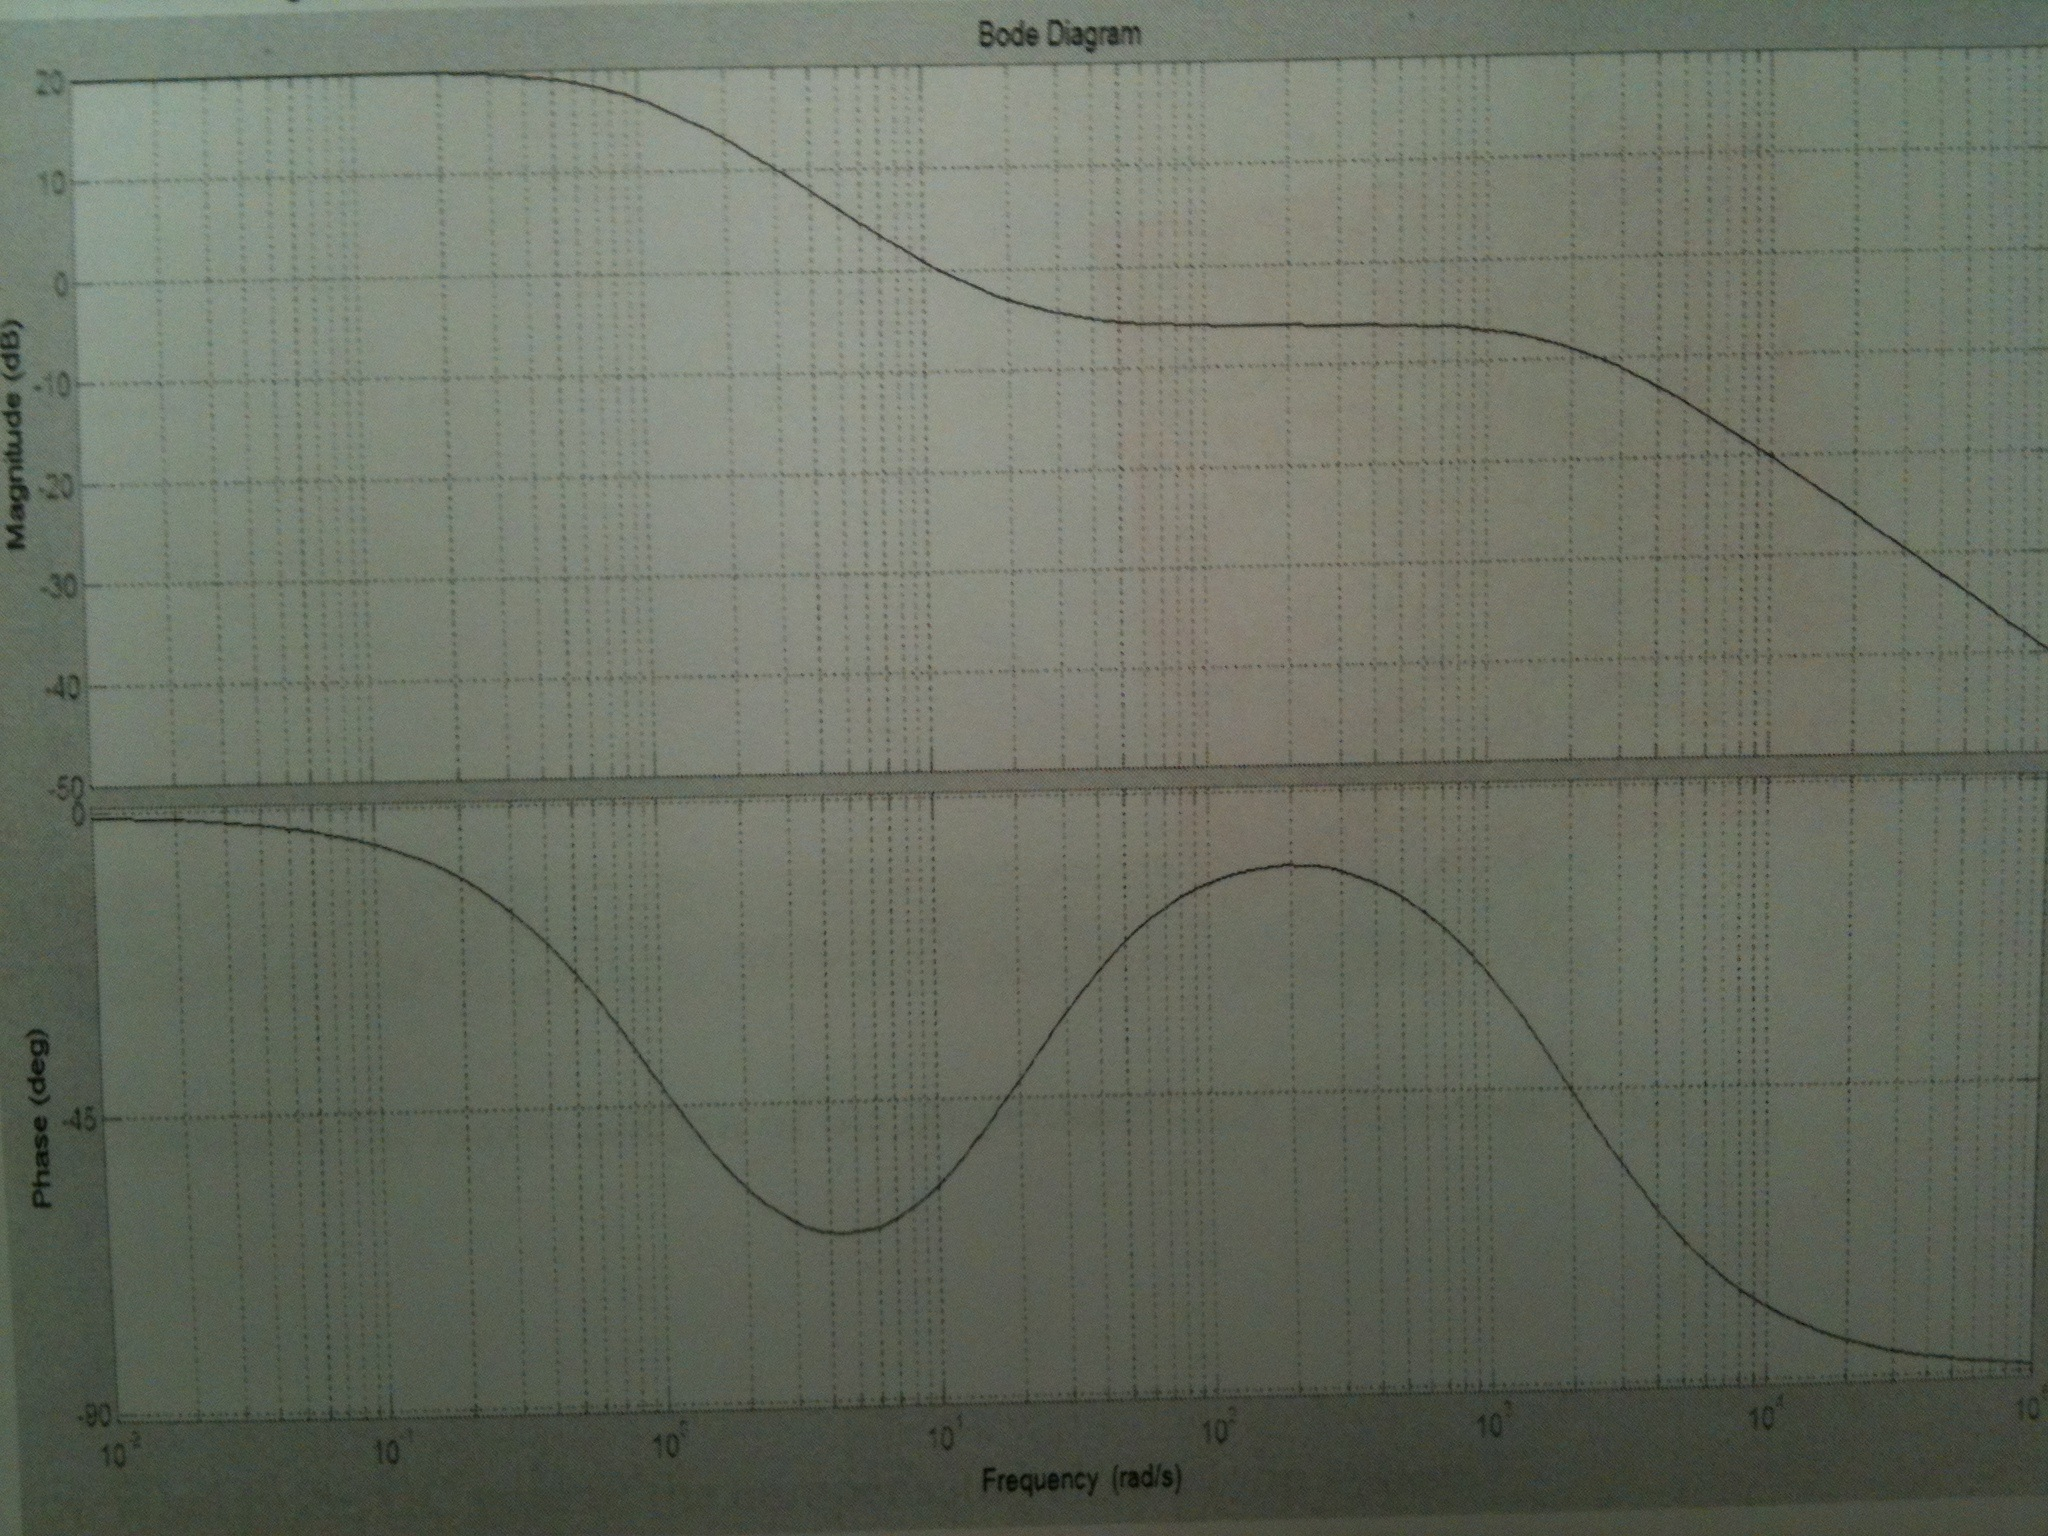 The bode plot of GcG(s) is shown below. Determine